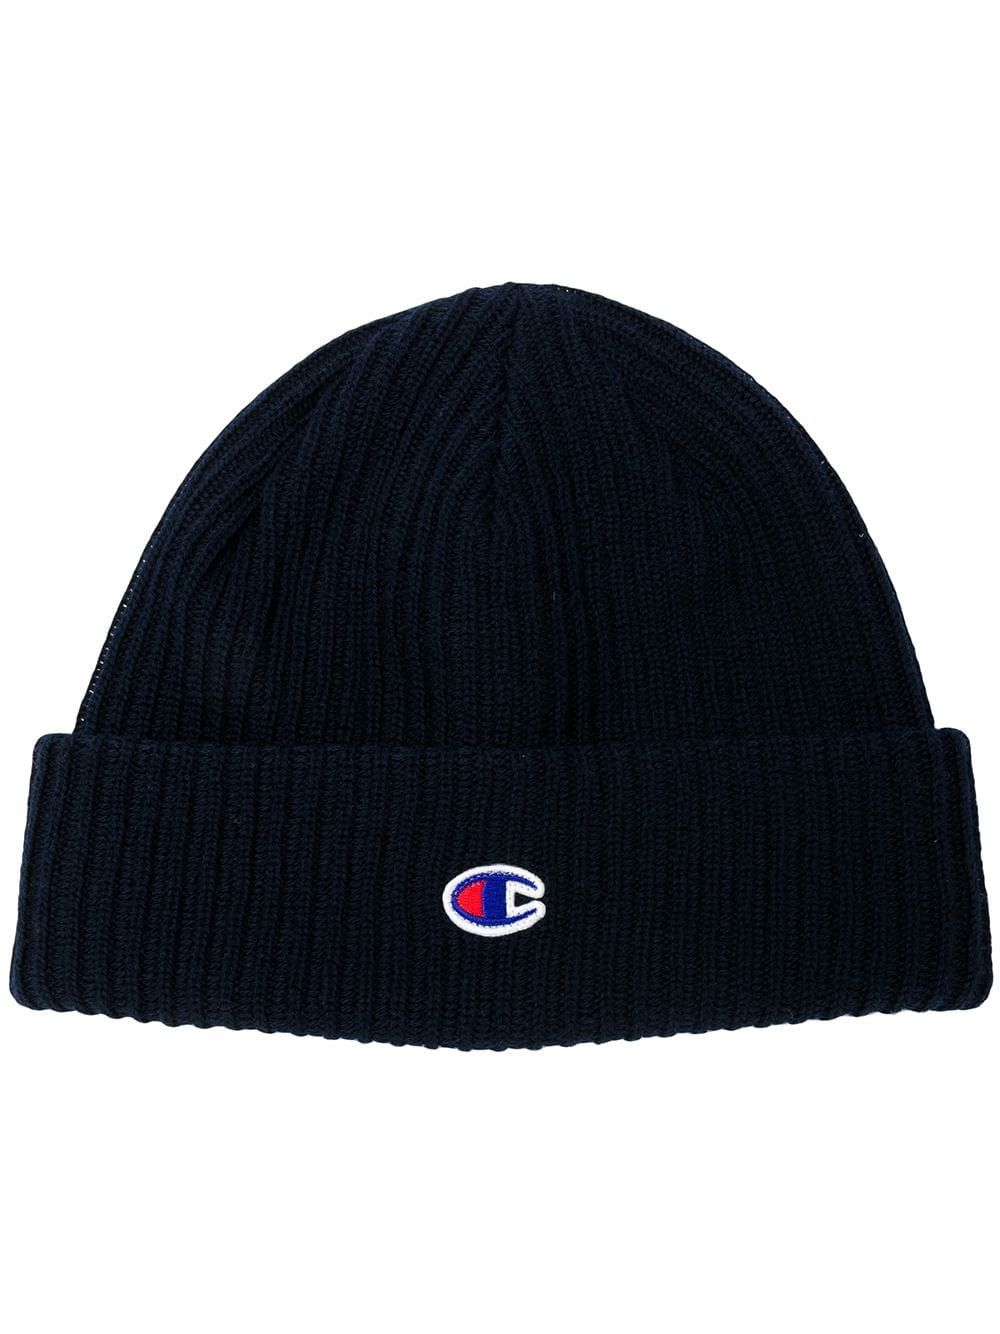 6f386685d Champion Embroidered Logo Beanie in 2019 | Products | Beanie, Blue ...